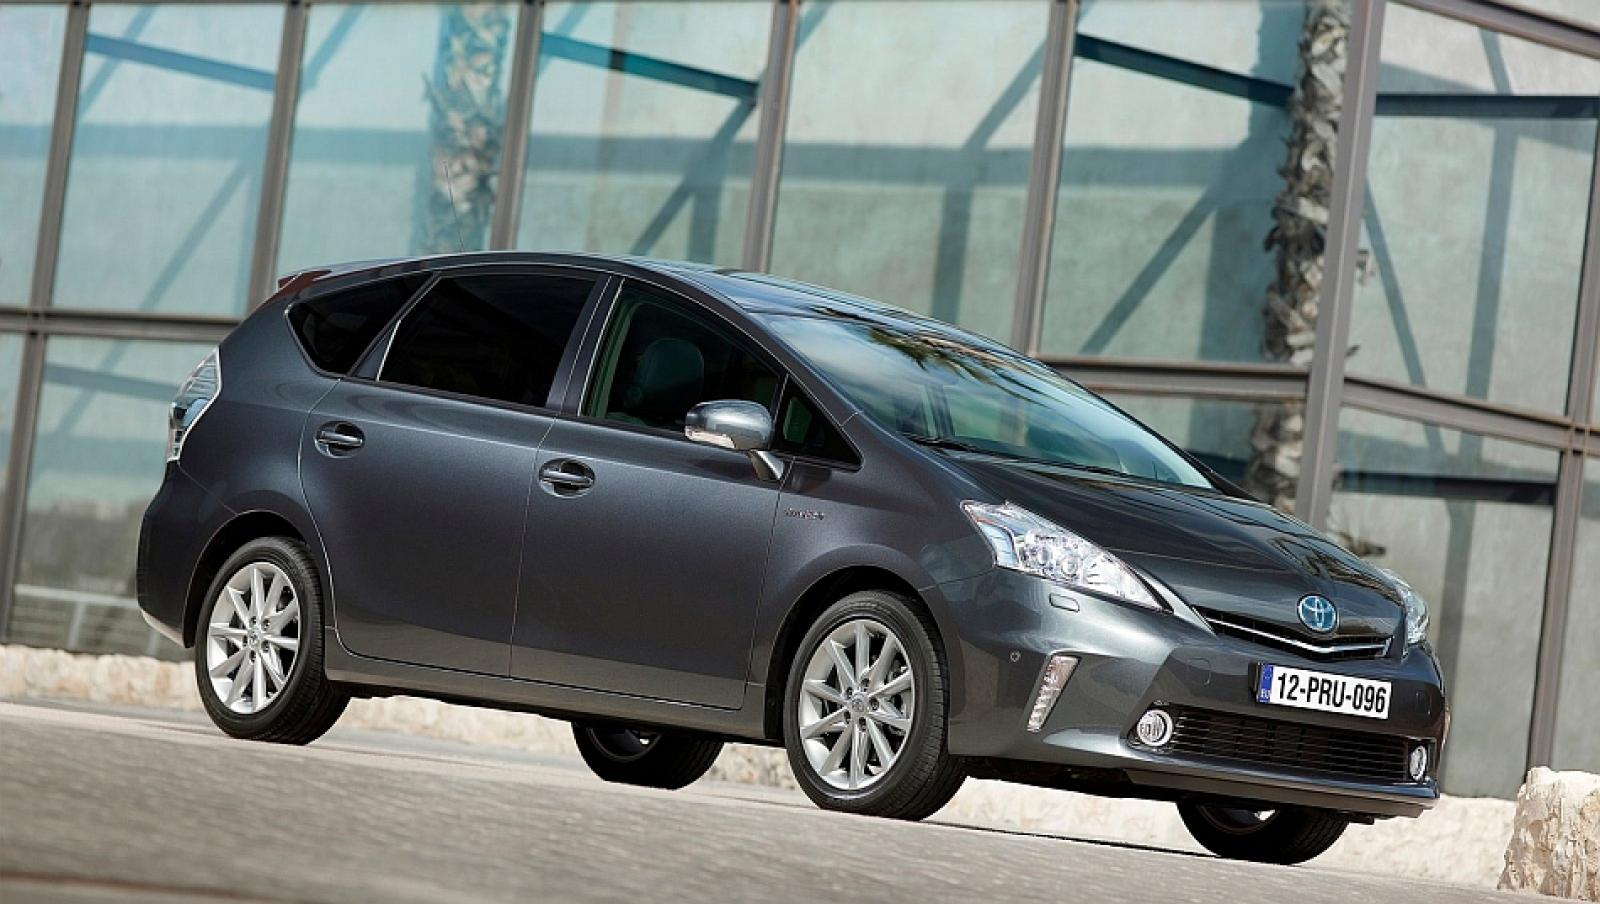 2013 toyota prius v information and photos zombiedrive. Black Bedroom Furniture Sets. Home Design Ideas